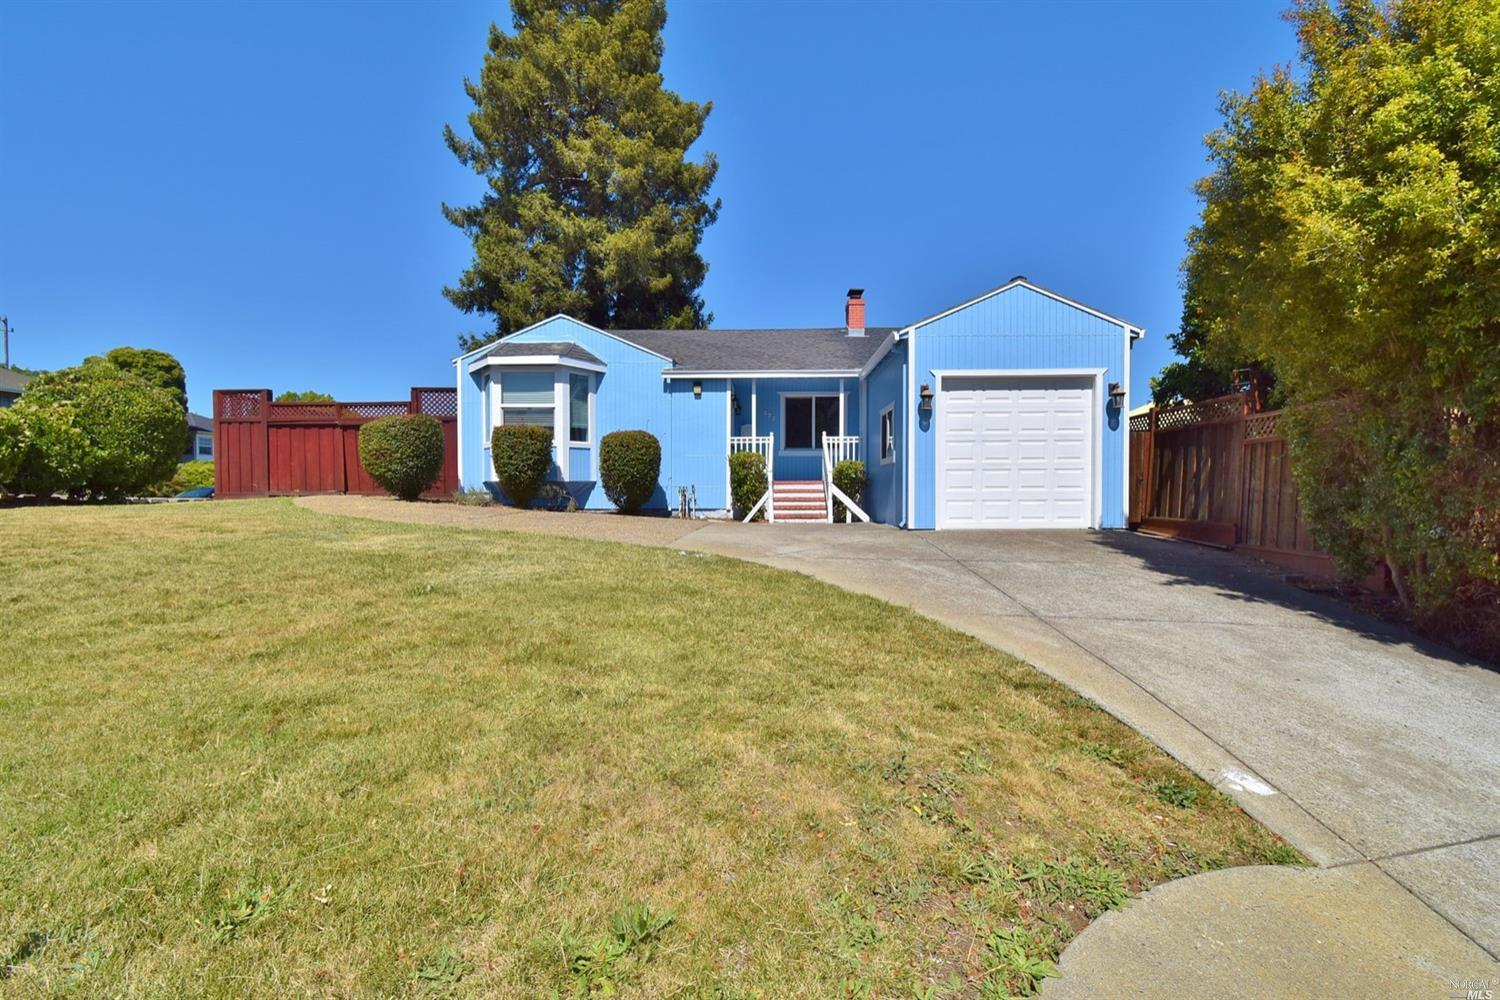 Cute 3 bedroom, 2 bath ranch style home on large corner lot in great neighborhood. Features include